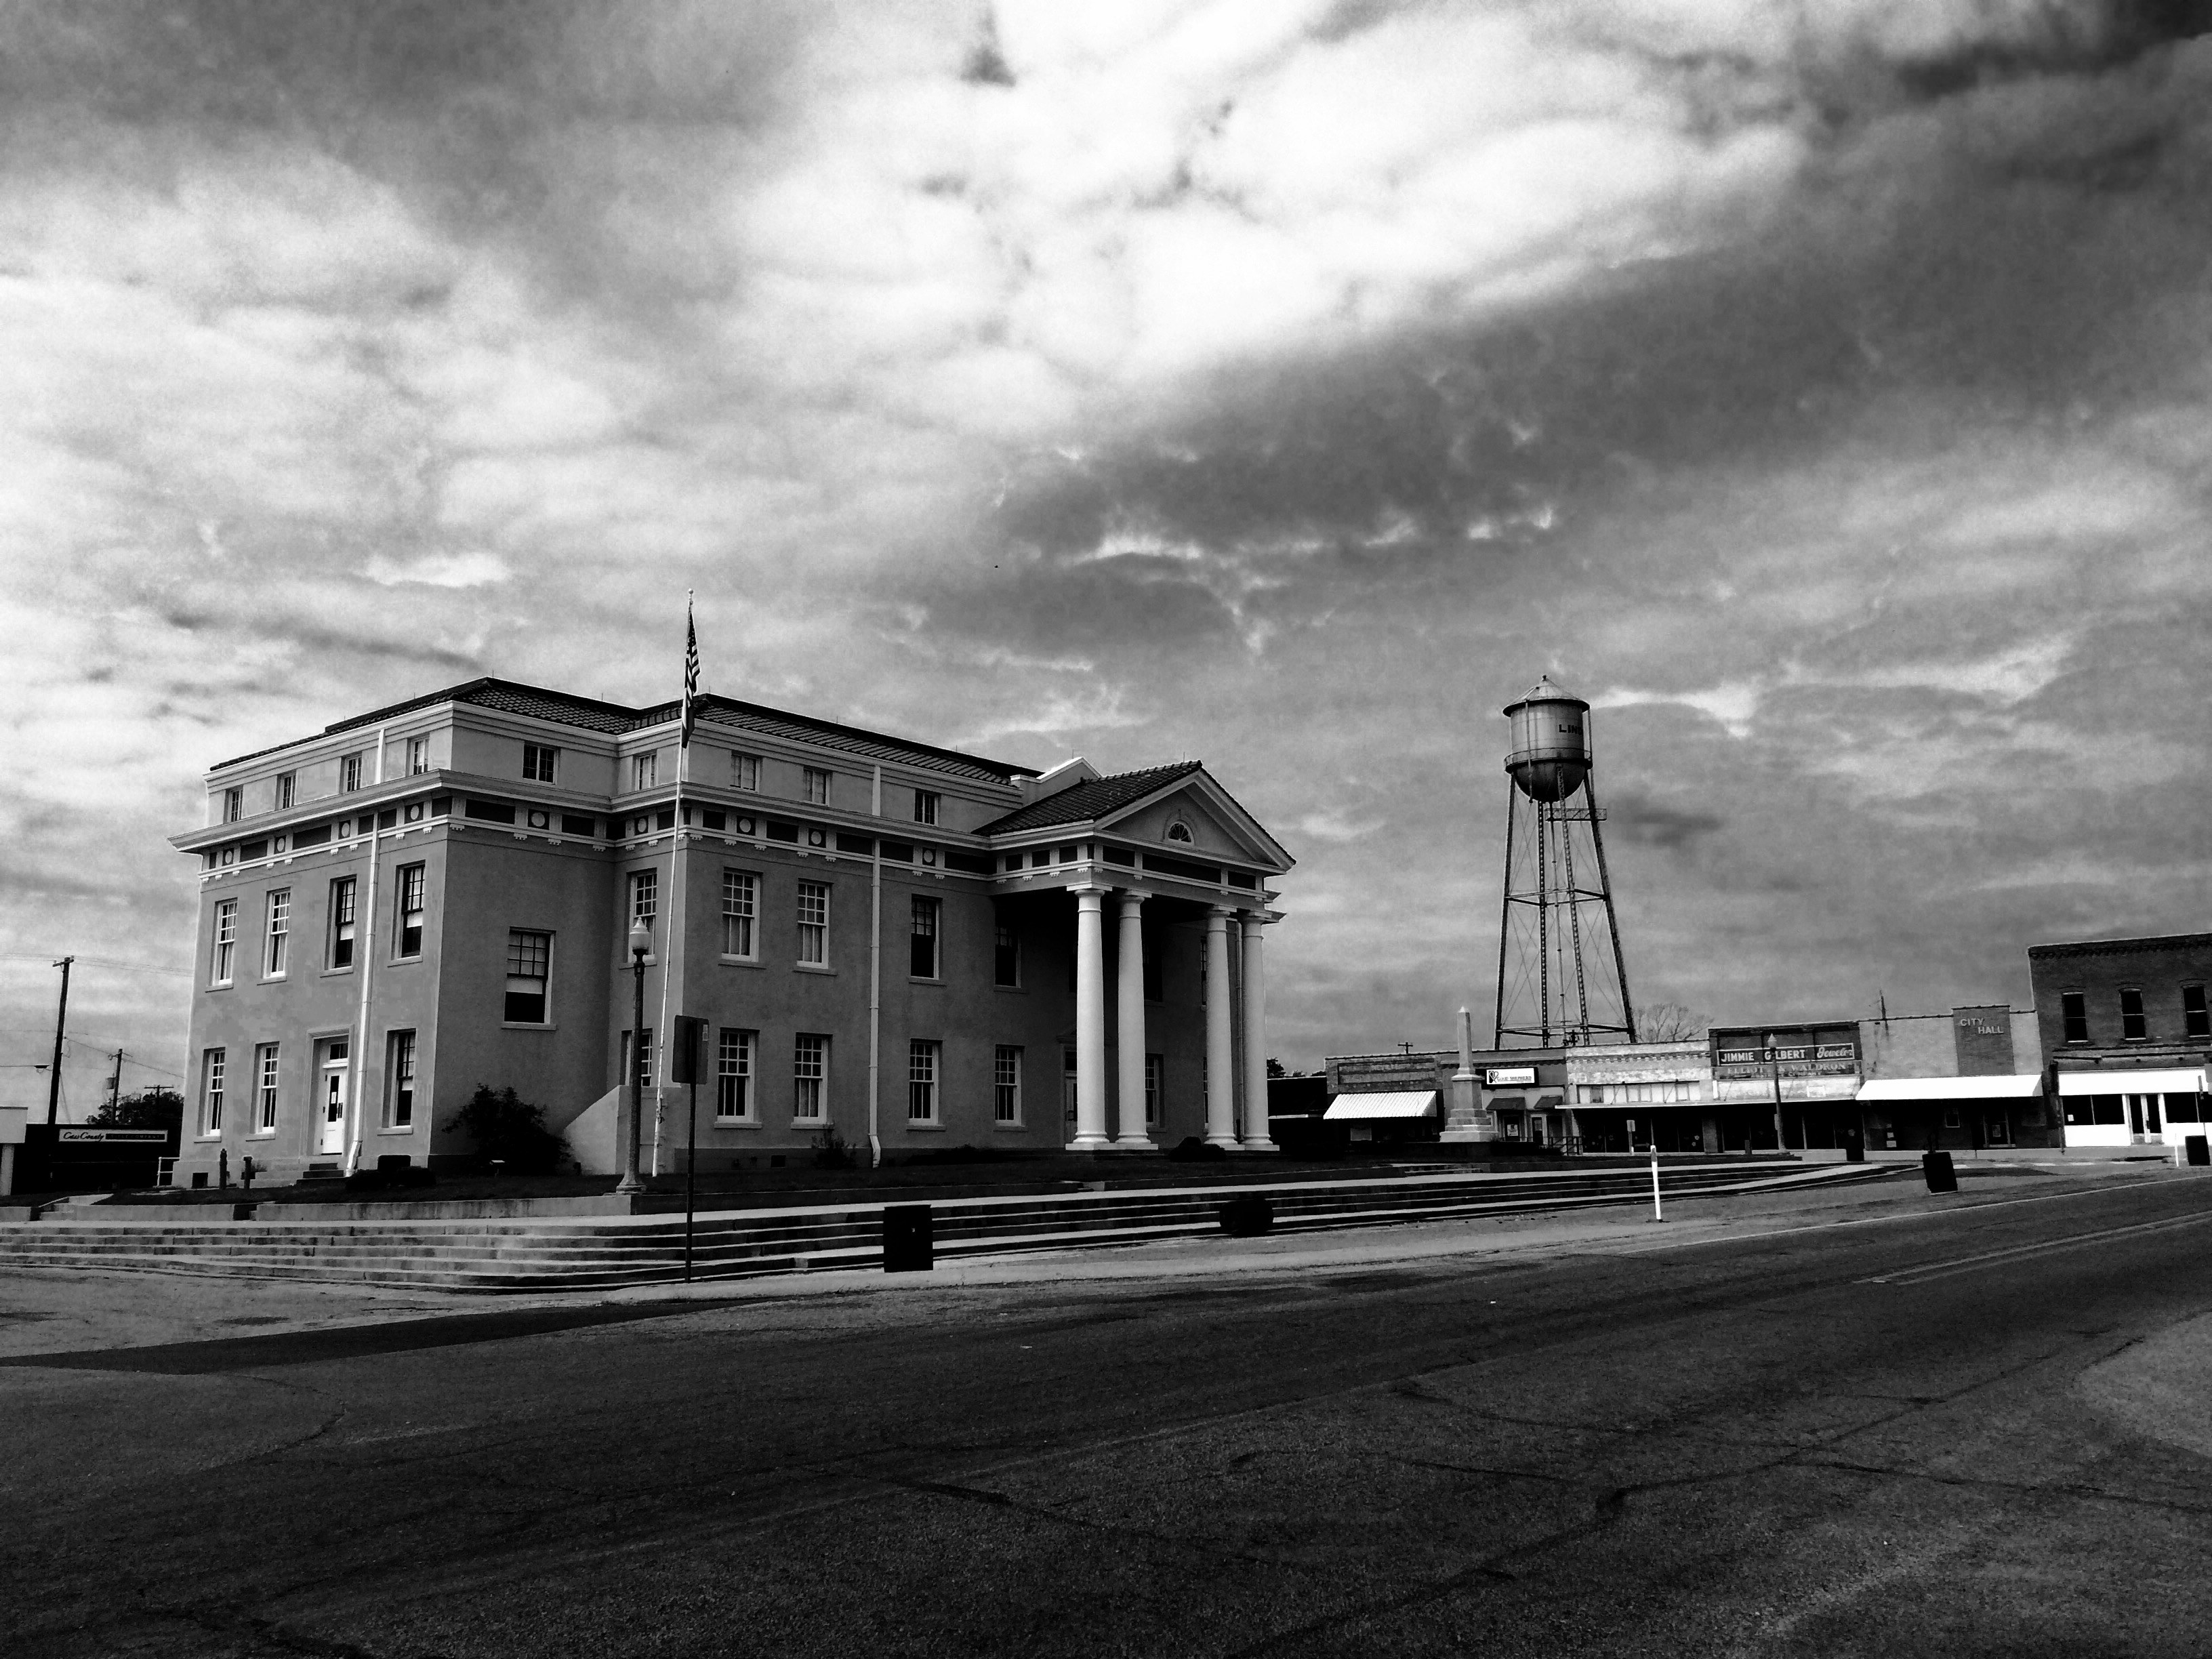 North and east faces of Cass County Courthouse with Linden's 1934 historic Water Tower in background